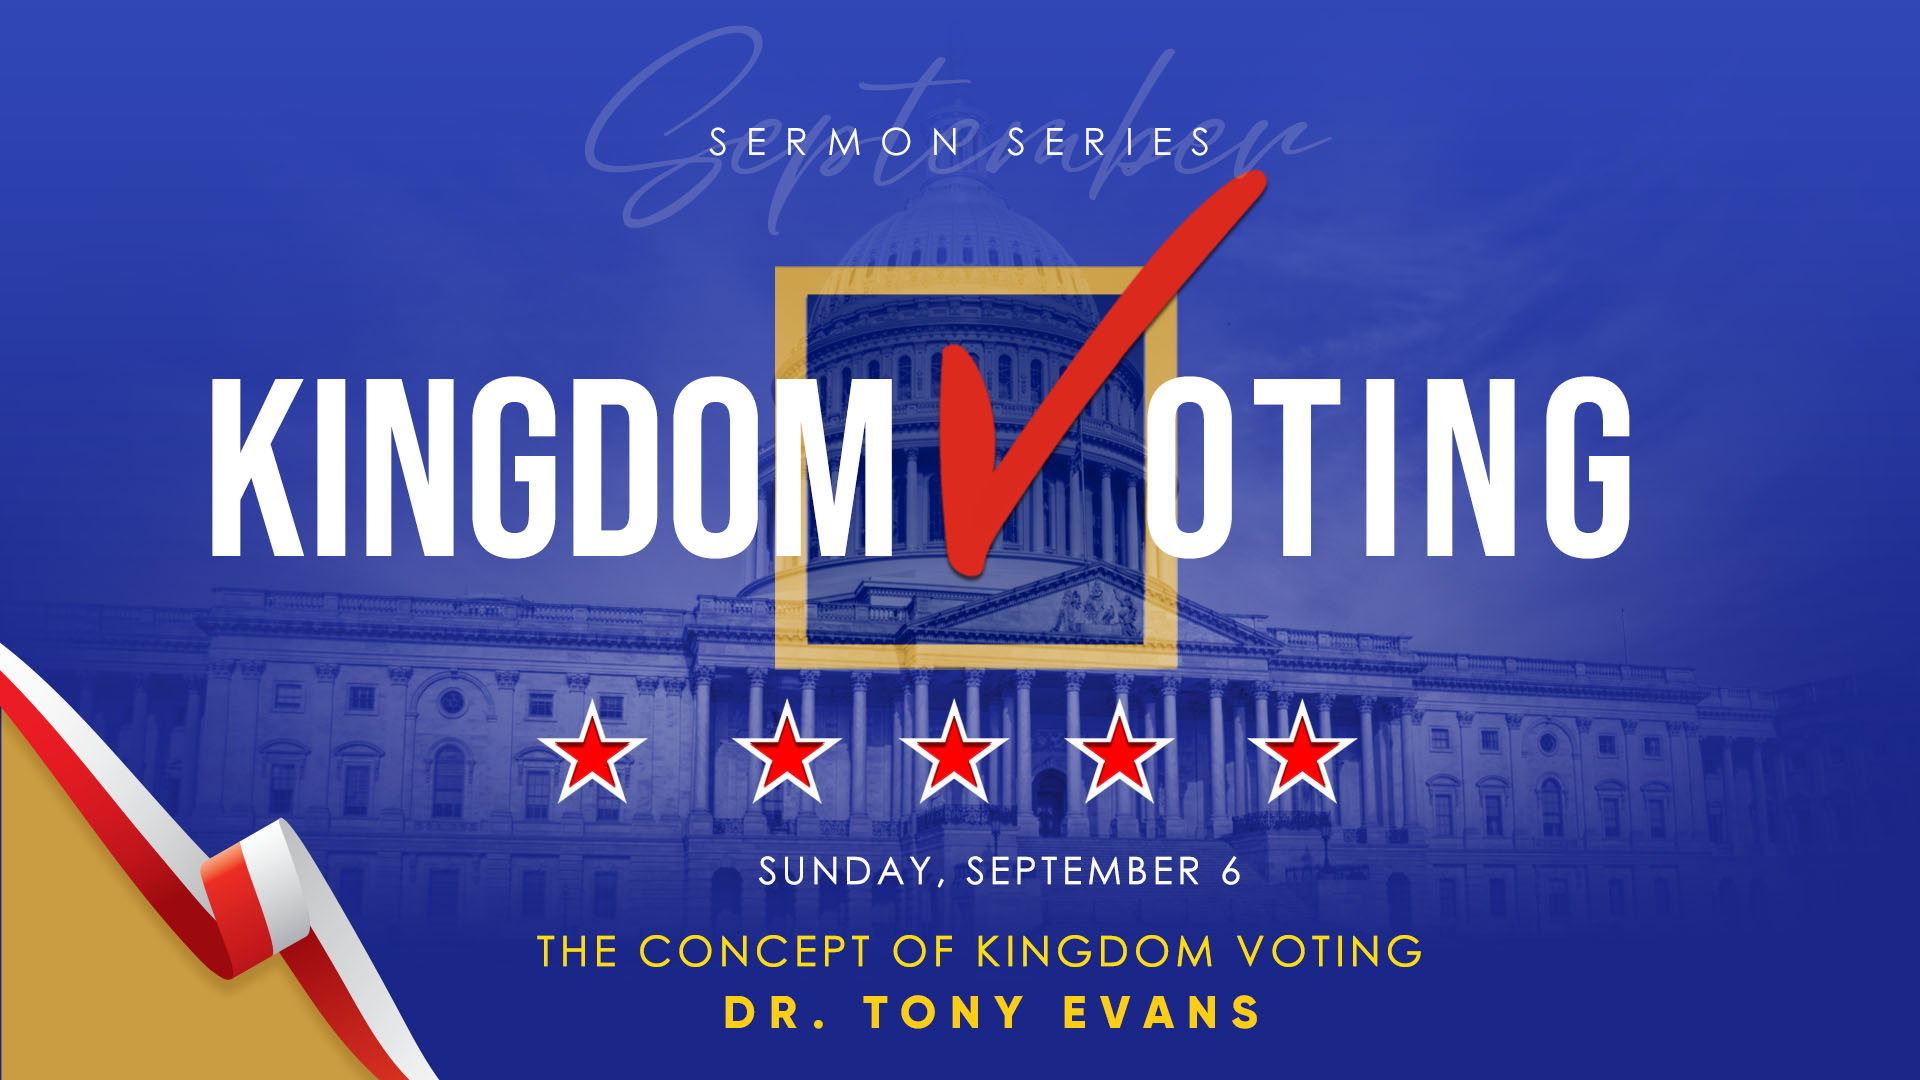 The concept of kingdom voting by Dr. Tony Evans